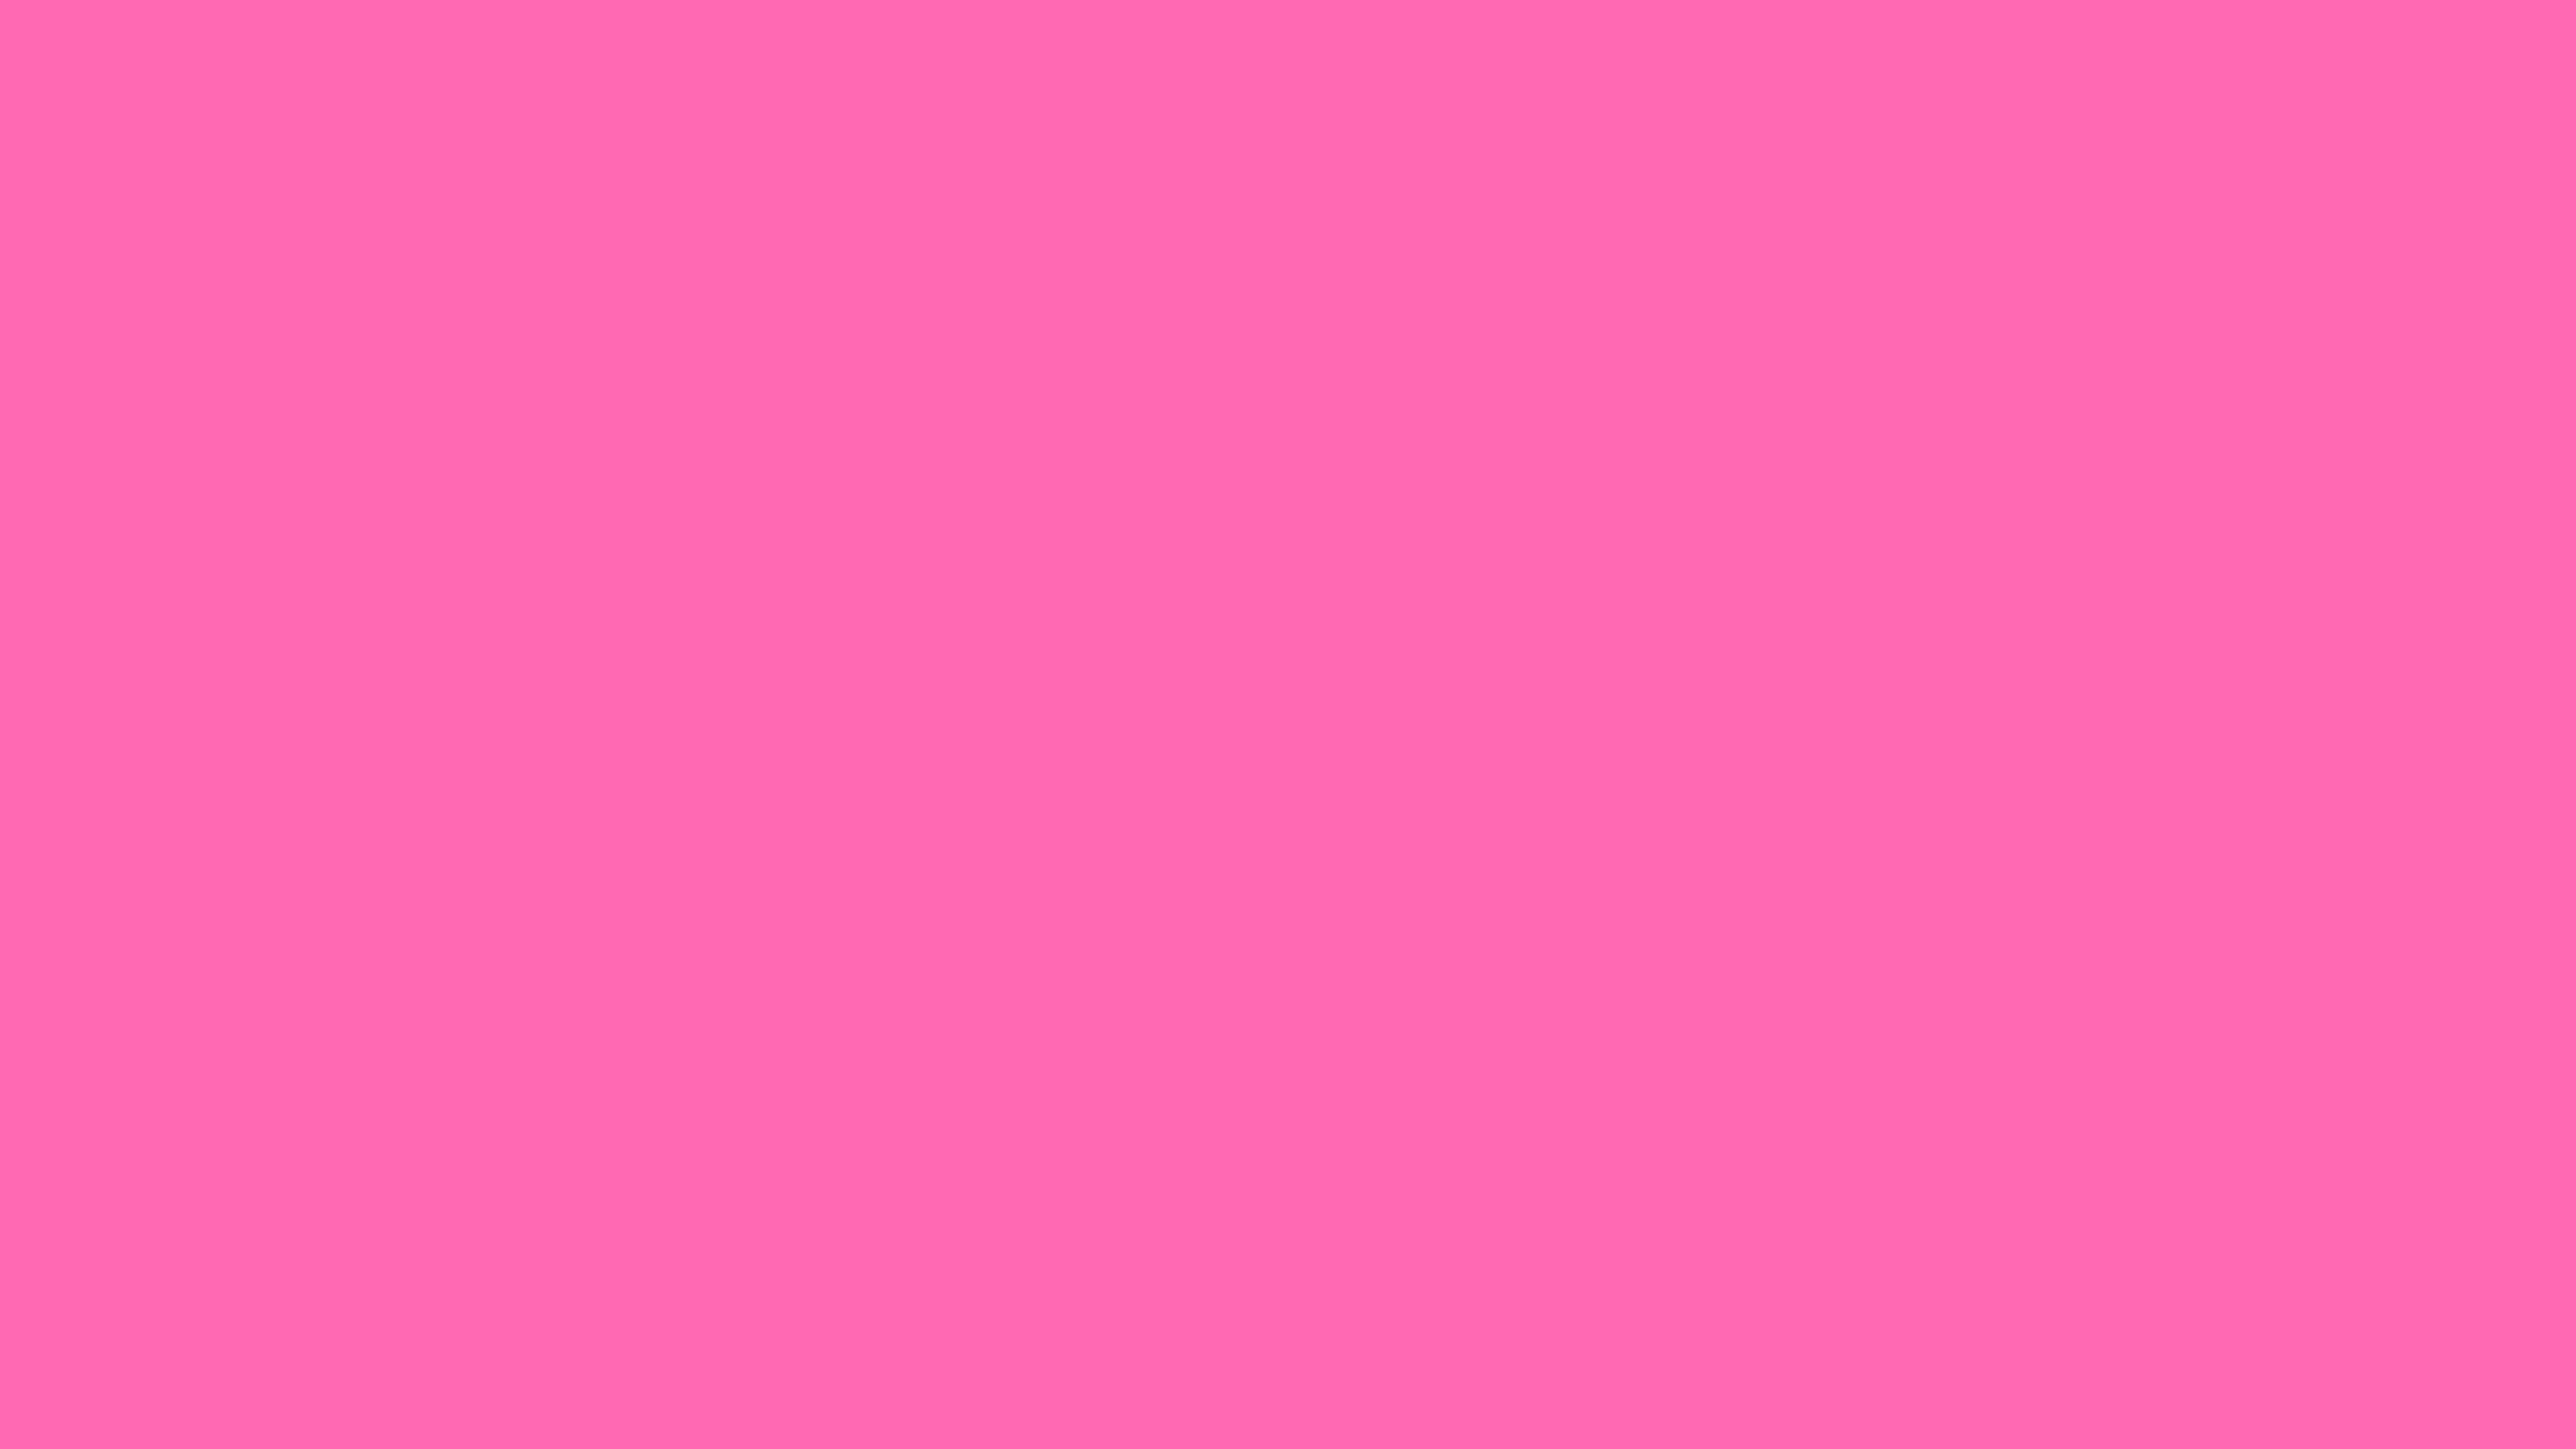 Pink Colour Background 183 ①